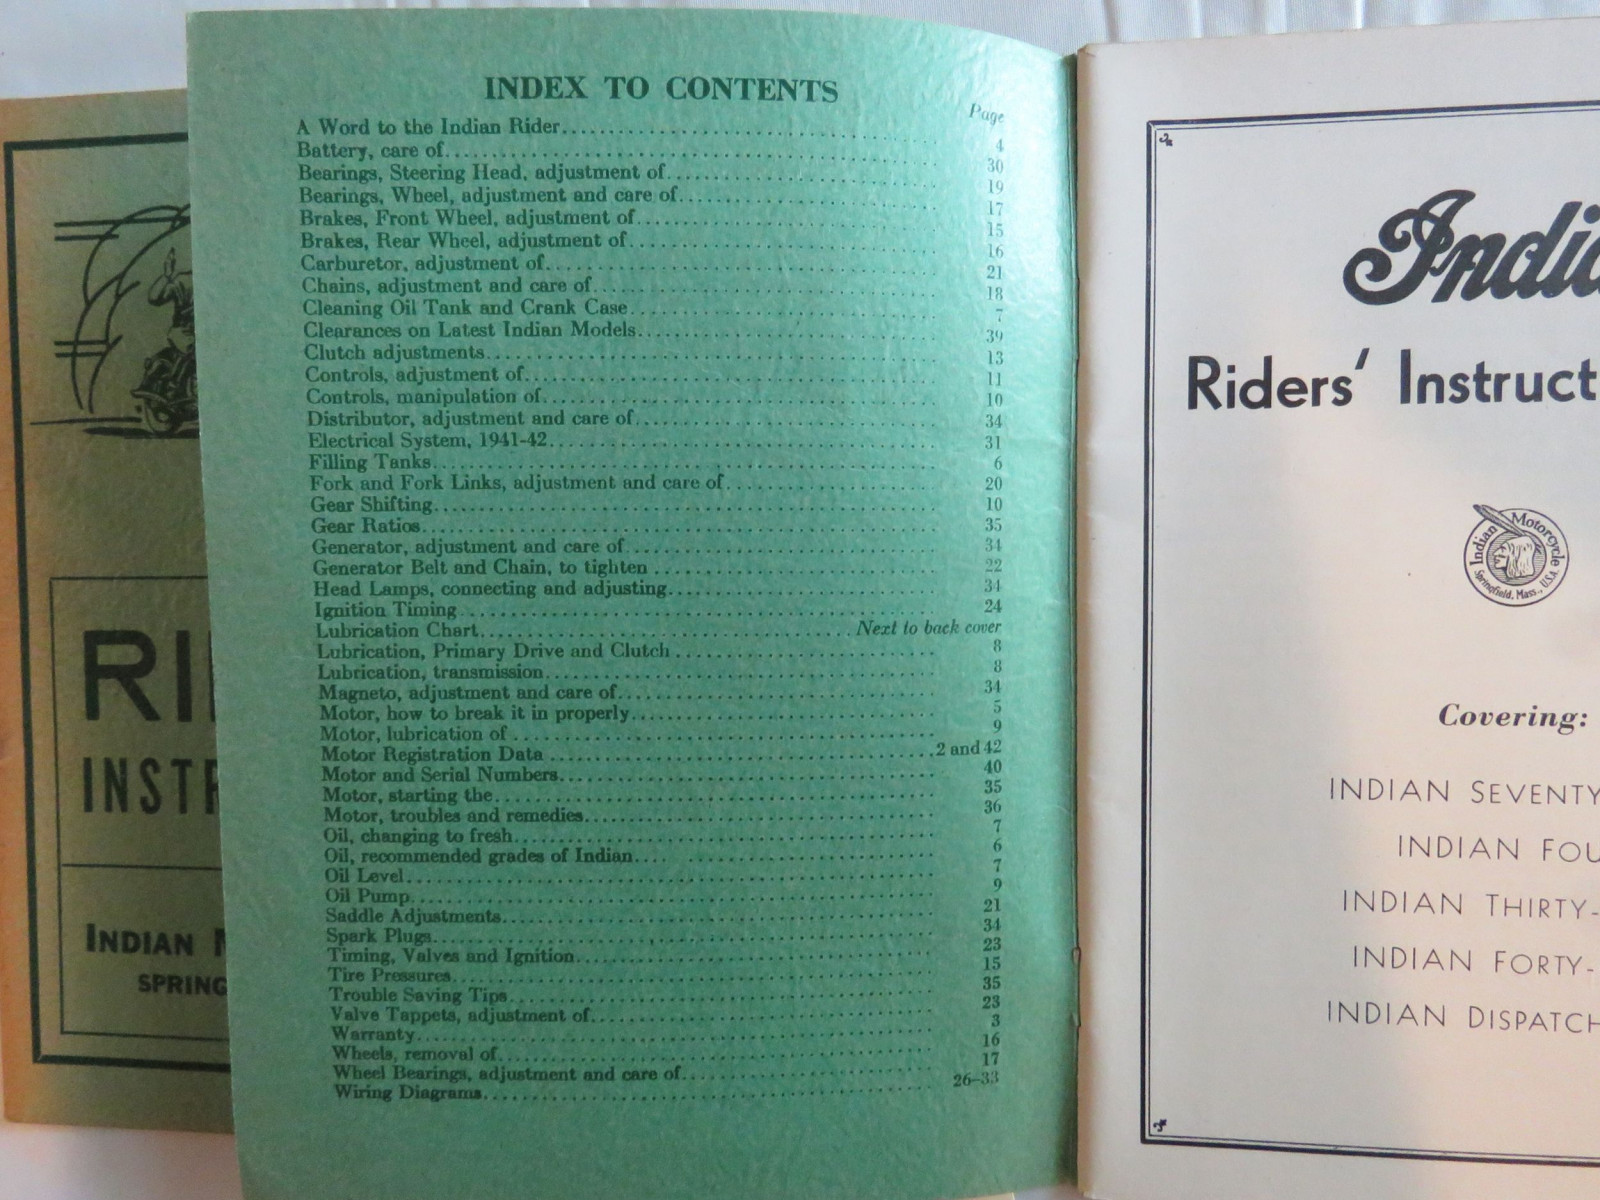 Lot of 2 Indian Motorcycles Riders' Instruction Books - Image 2